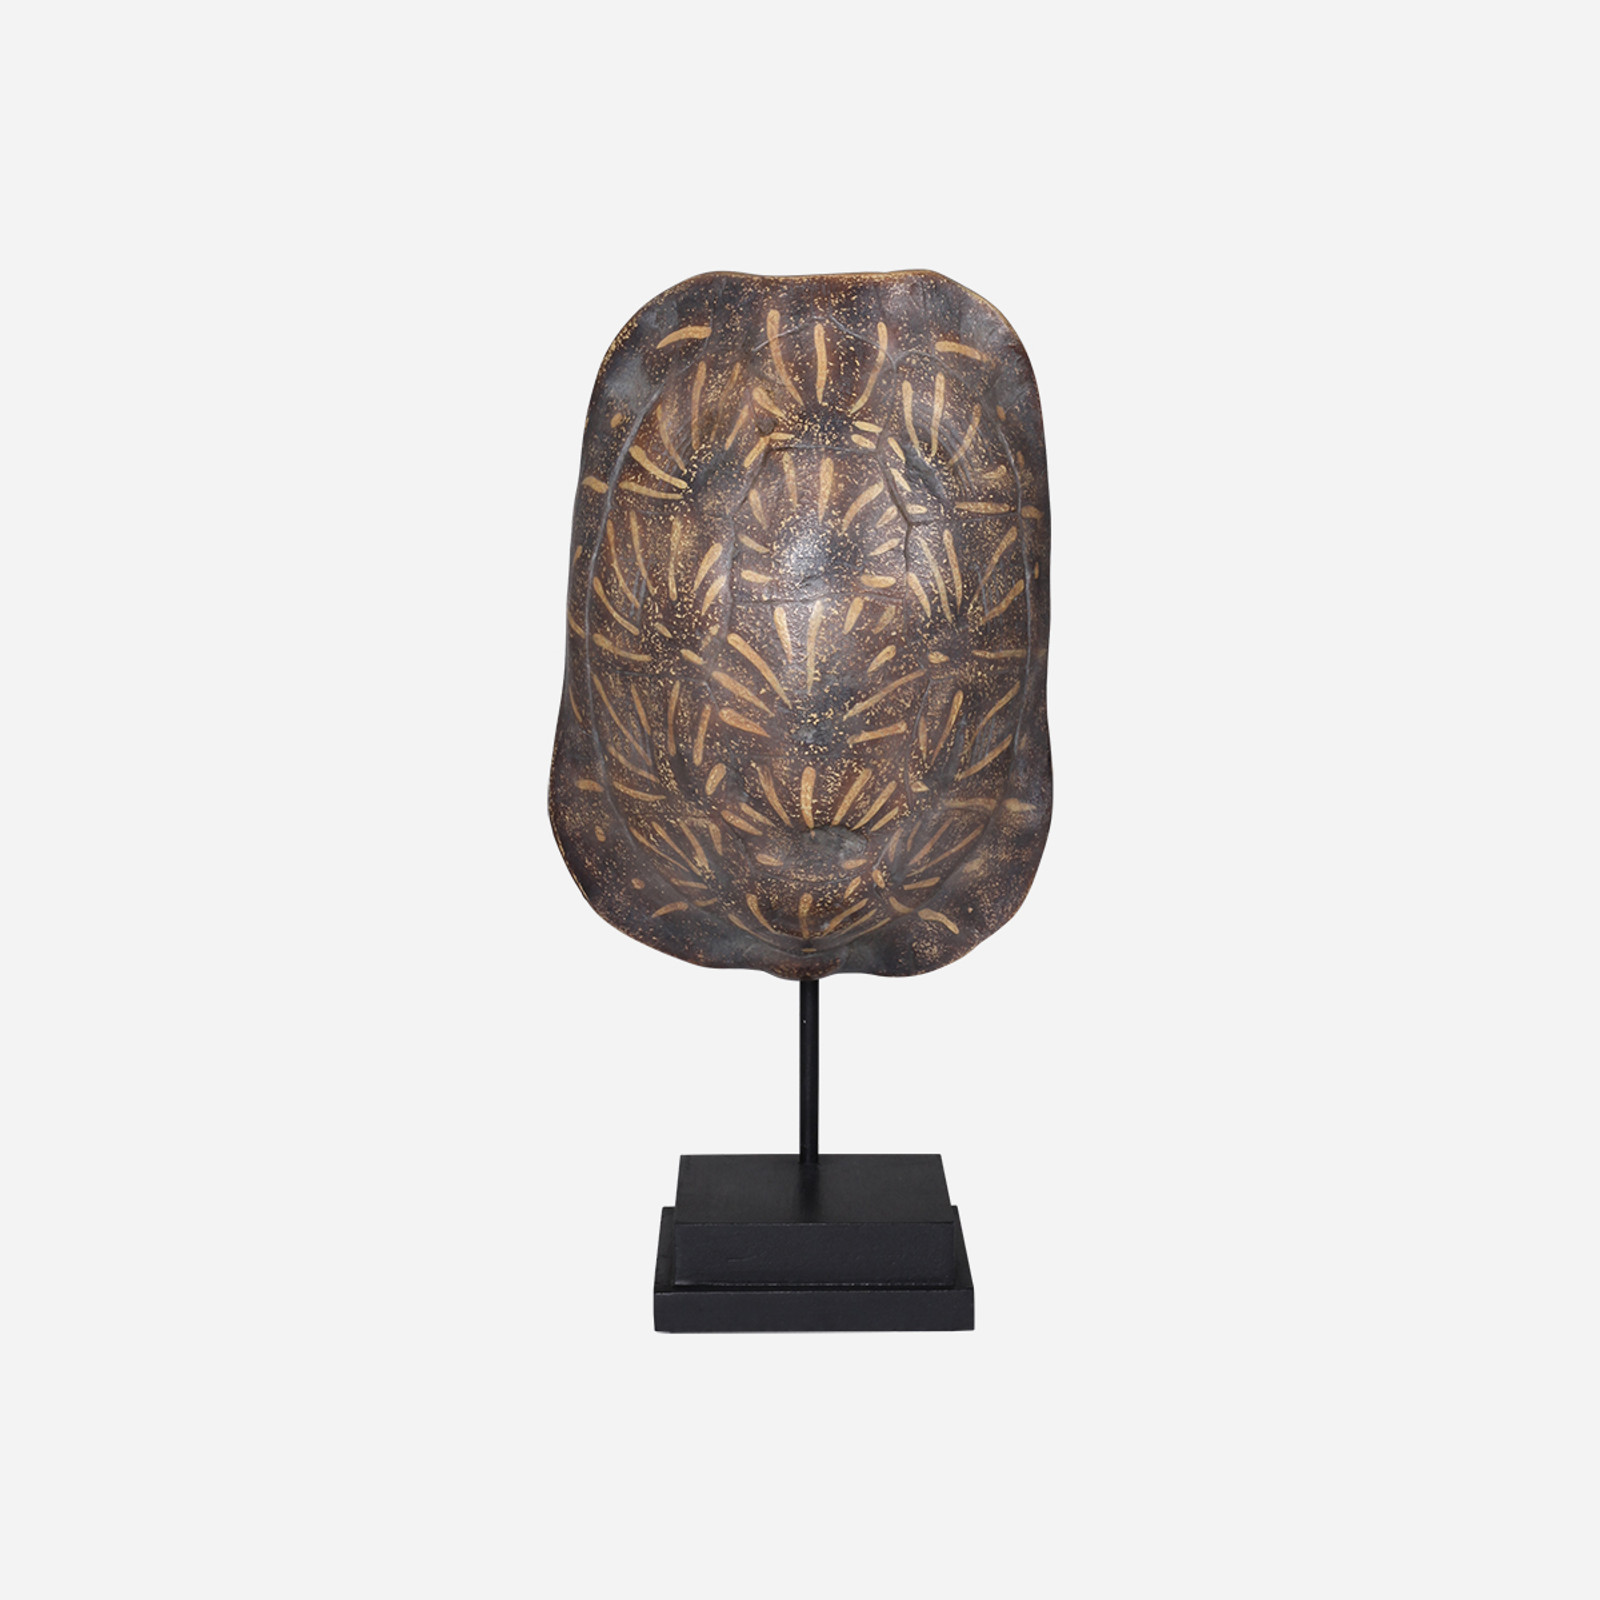 Faux Ornate Box Tortoise Shell on Stand